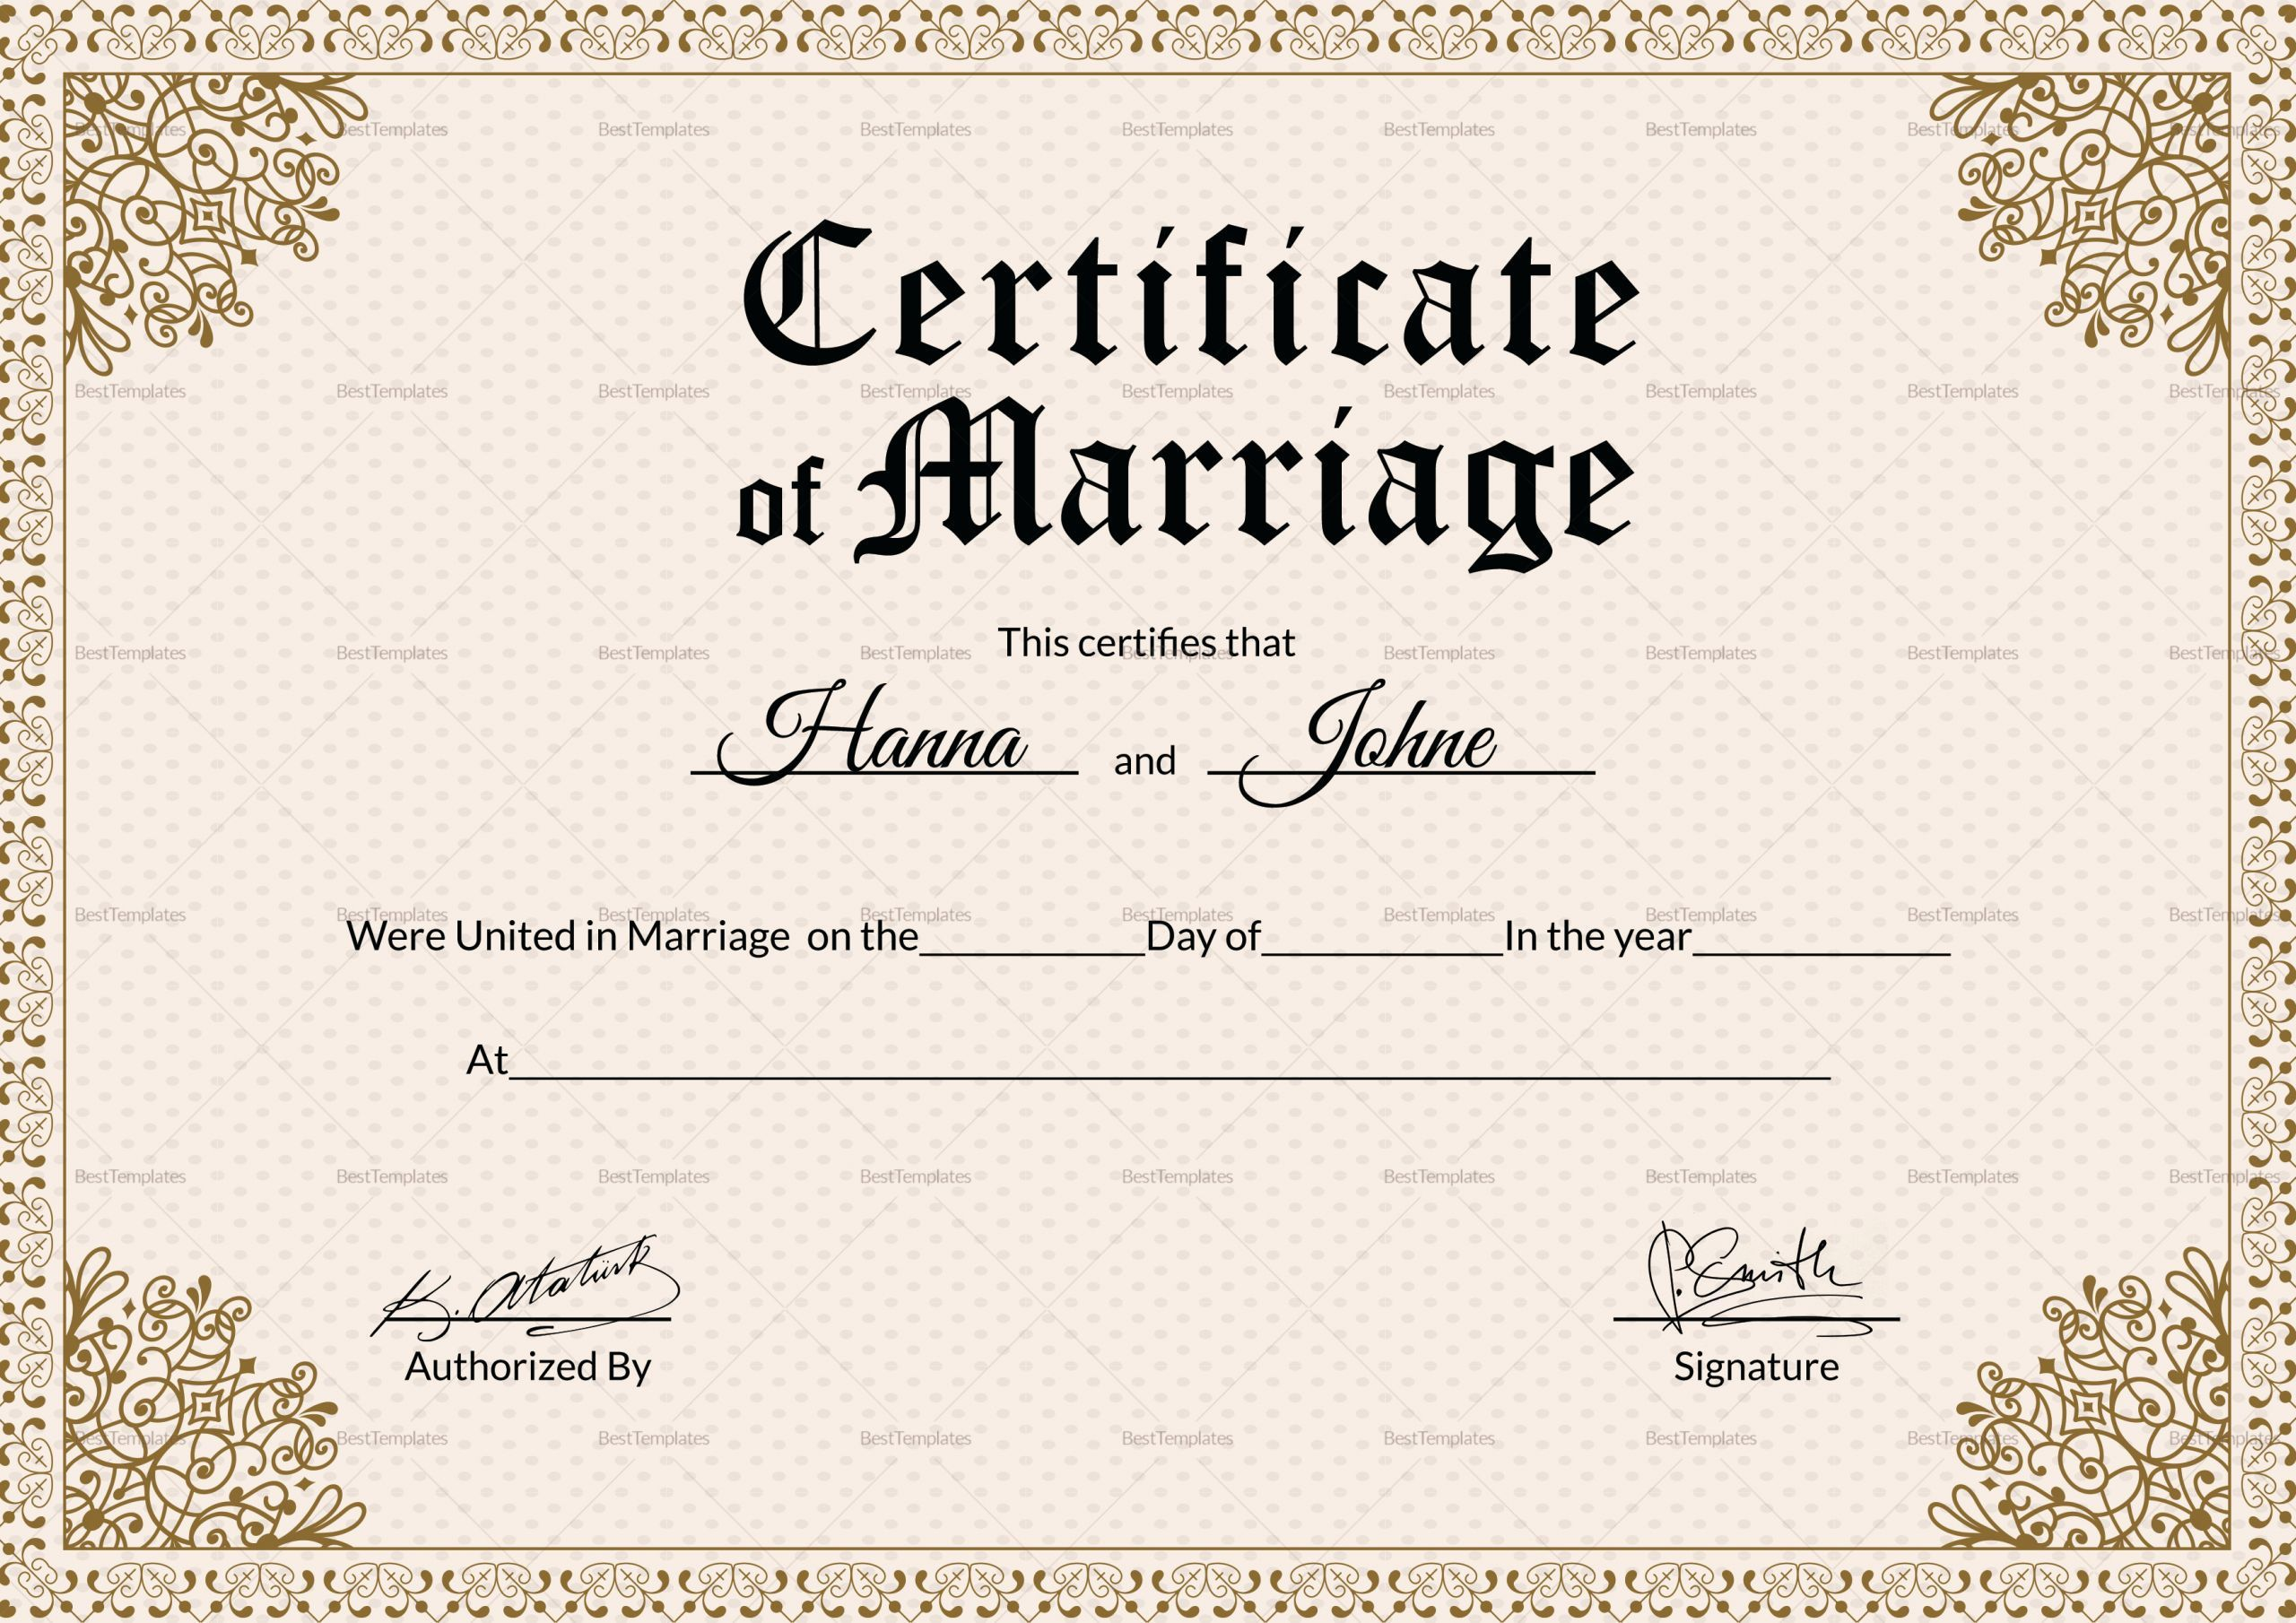 000 Striking Certificate Of Marriage Template High Resolution  Word AustraliaFull